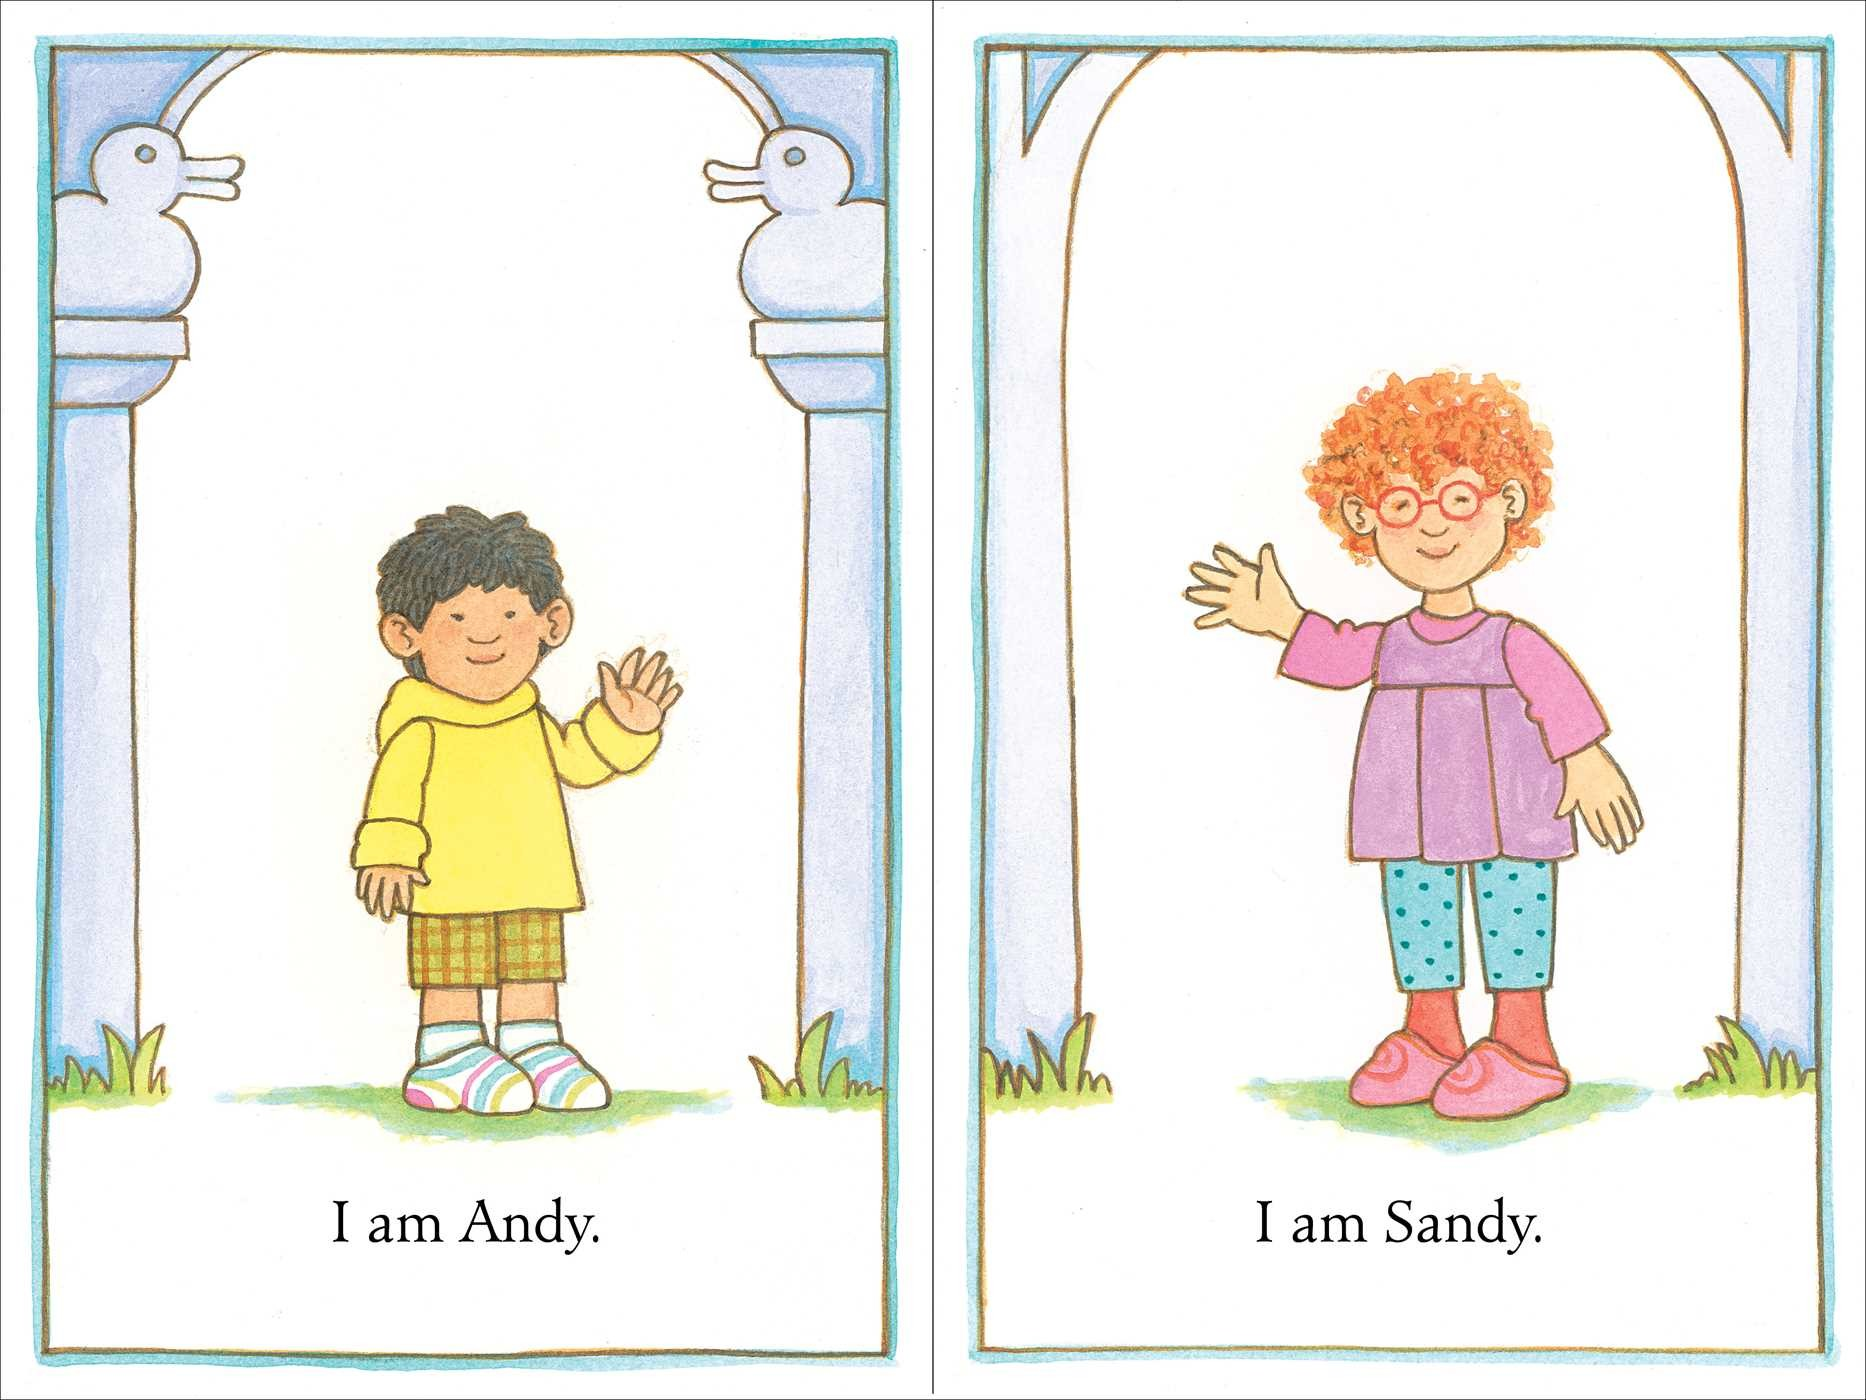 When andy met sandy 9781534413726.in01